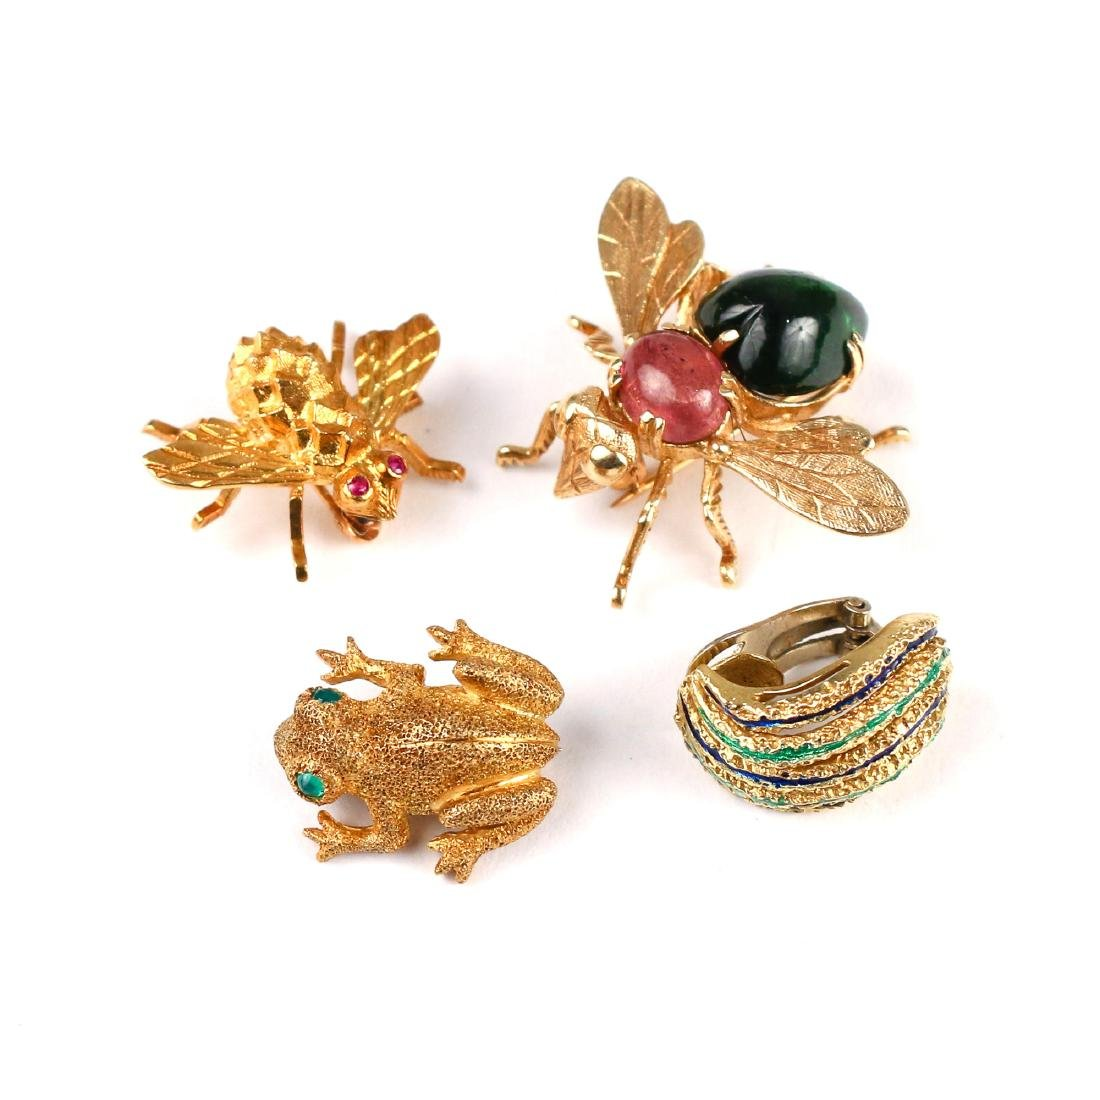 (4pc) GOLD ANIMAL PINS & OTHER